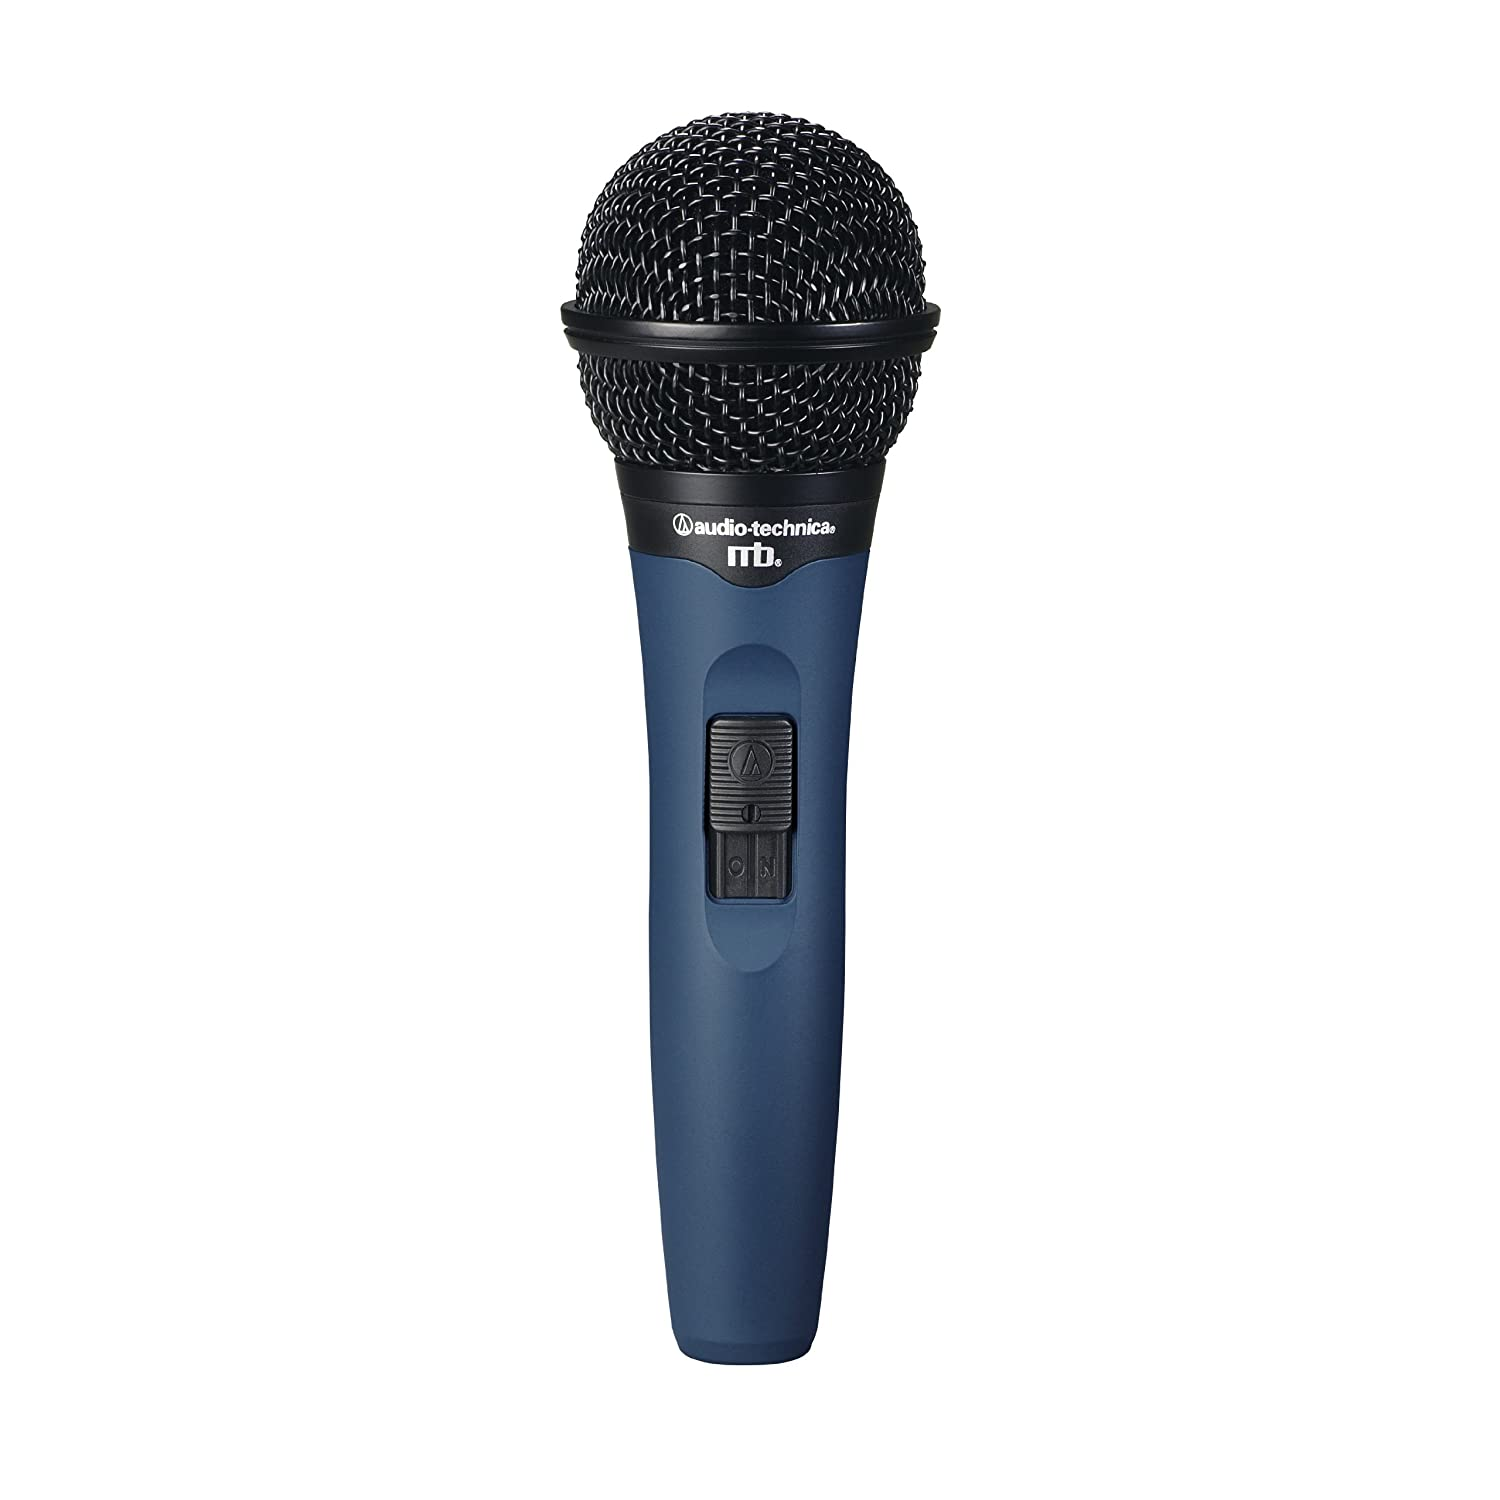 Audio-Technica MB1k Stage/performance microphone Blue - Microphones (Stage/performance microphone, 53 dB, 80-12000 Hz, 600 Ω, 337 g, Blue) 600 Ω